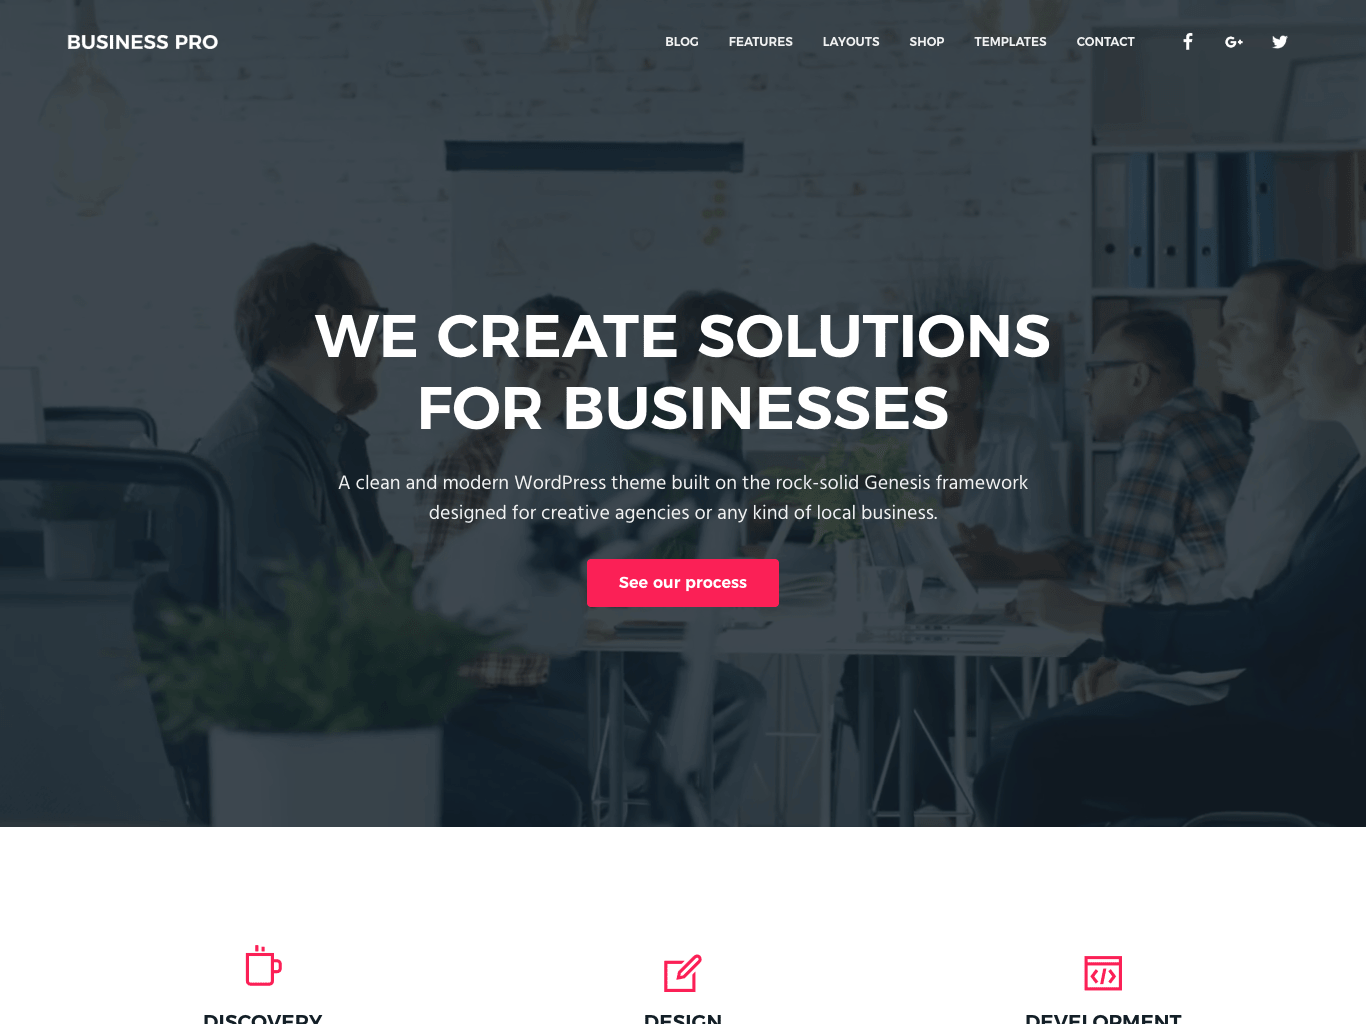 Business Pro Corporate WordPress Theme